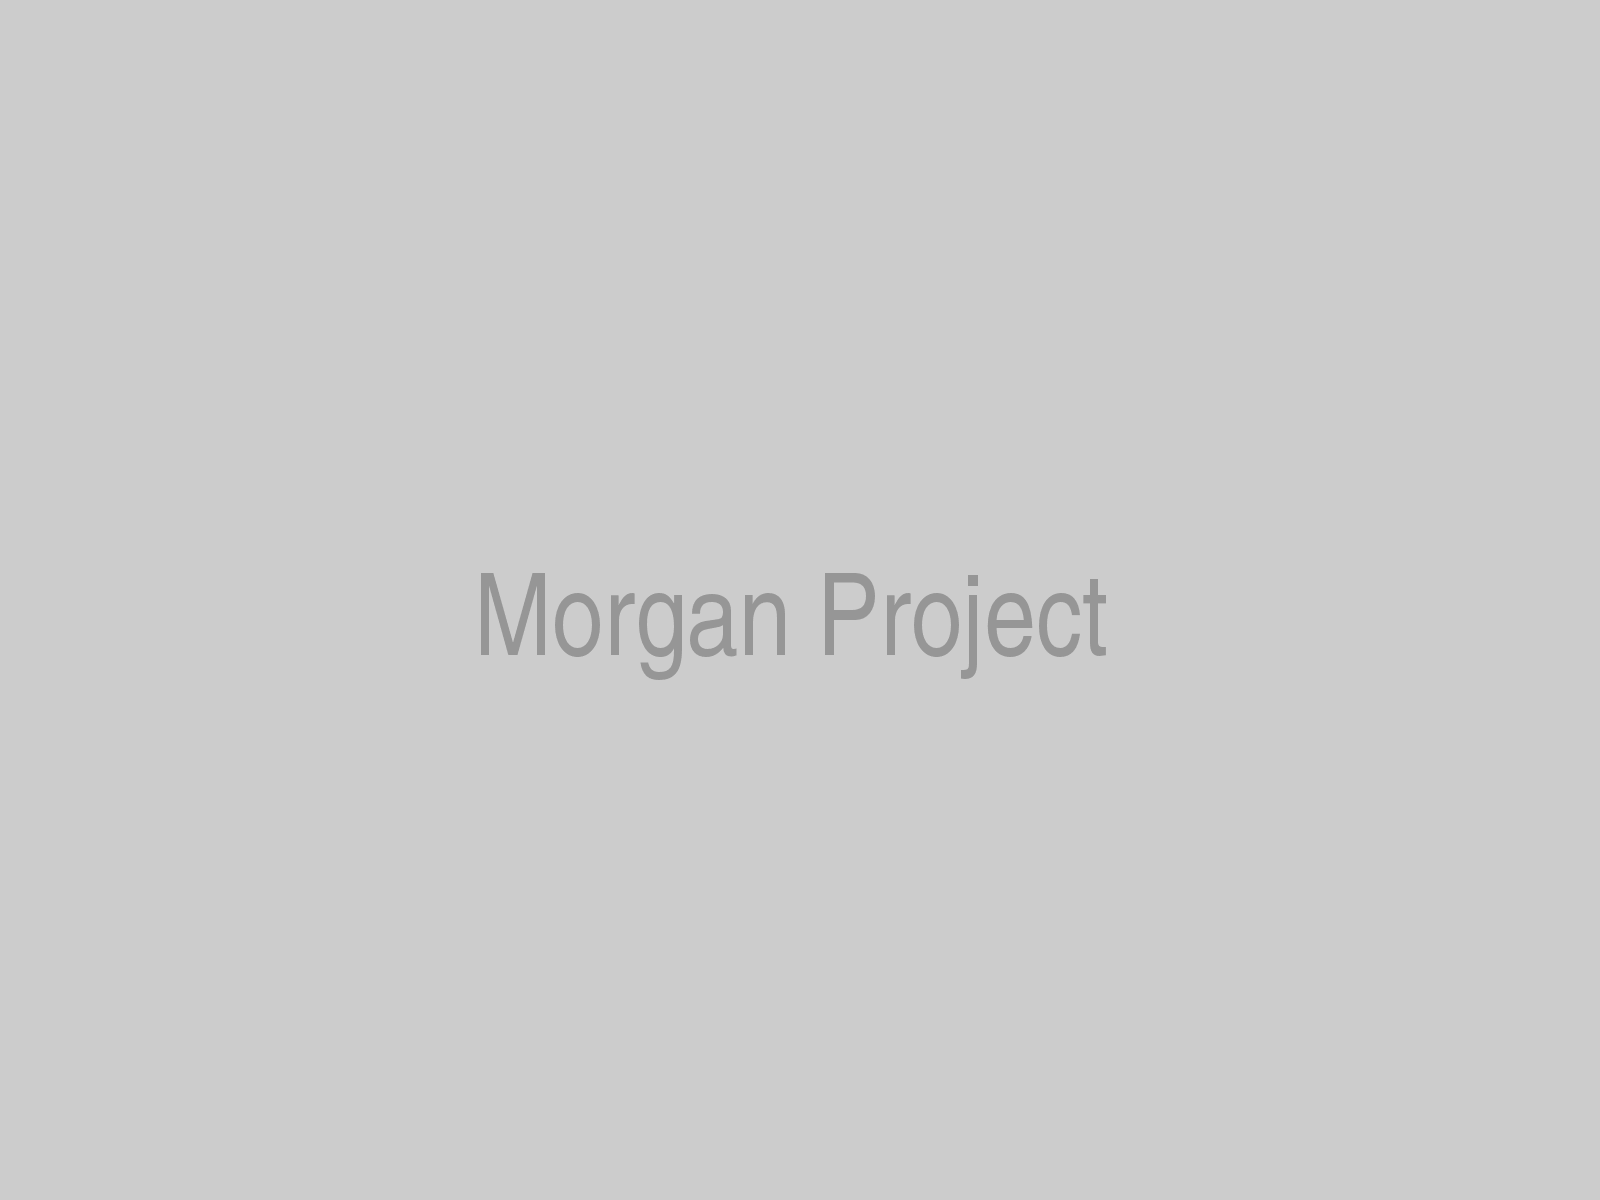 Morgan Project